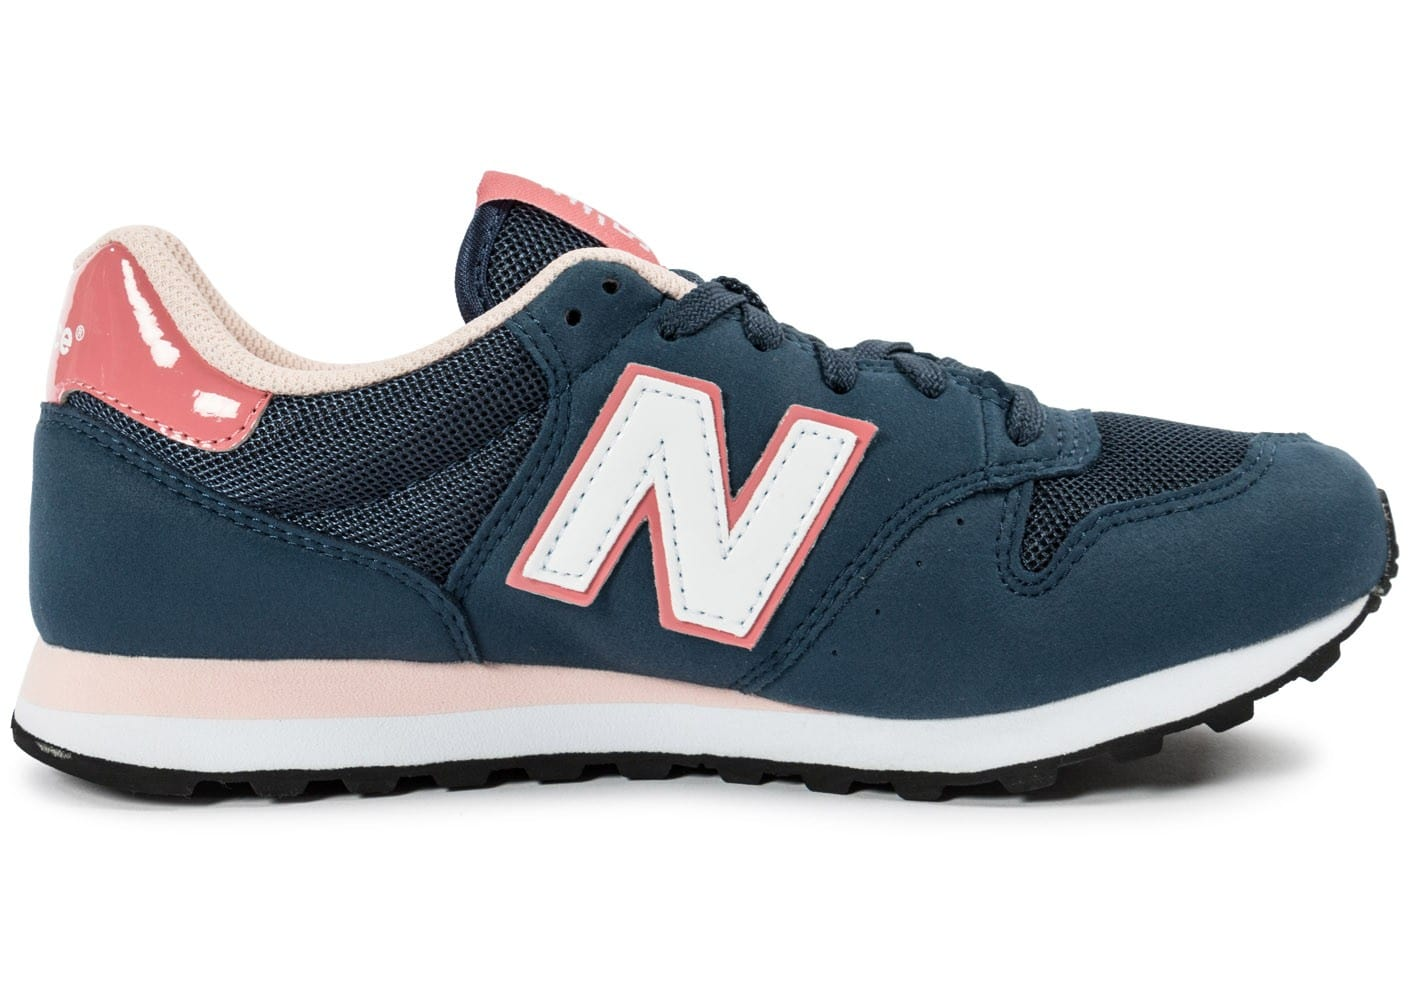 new balance 574 bleu et rose nike 1000 de football taille officielle. Black Bedroom Furniture Sets. Home Design Ideas